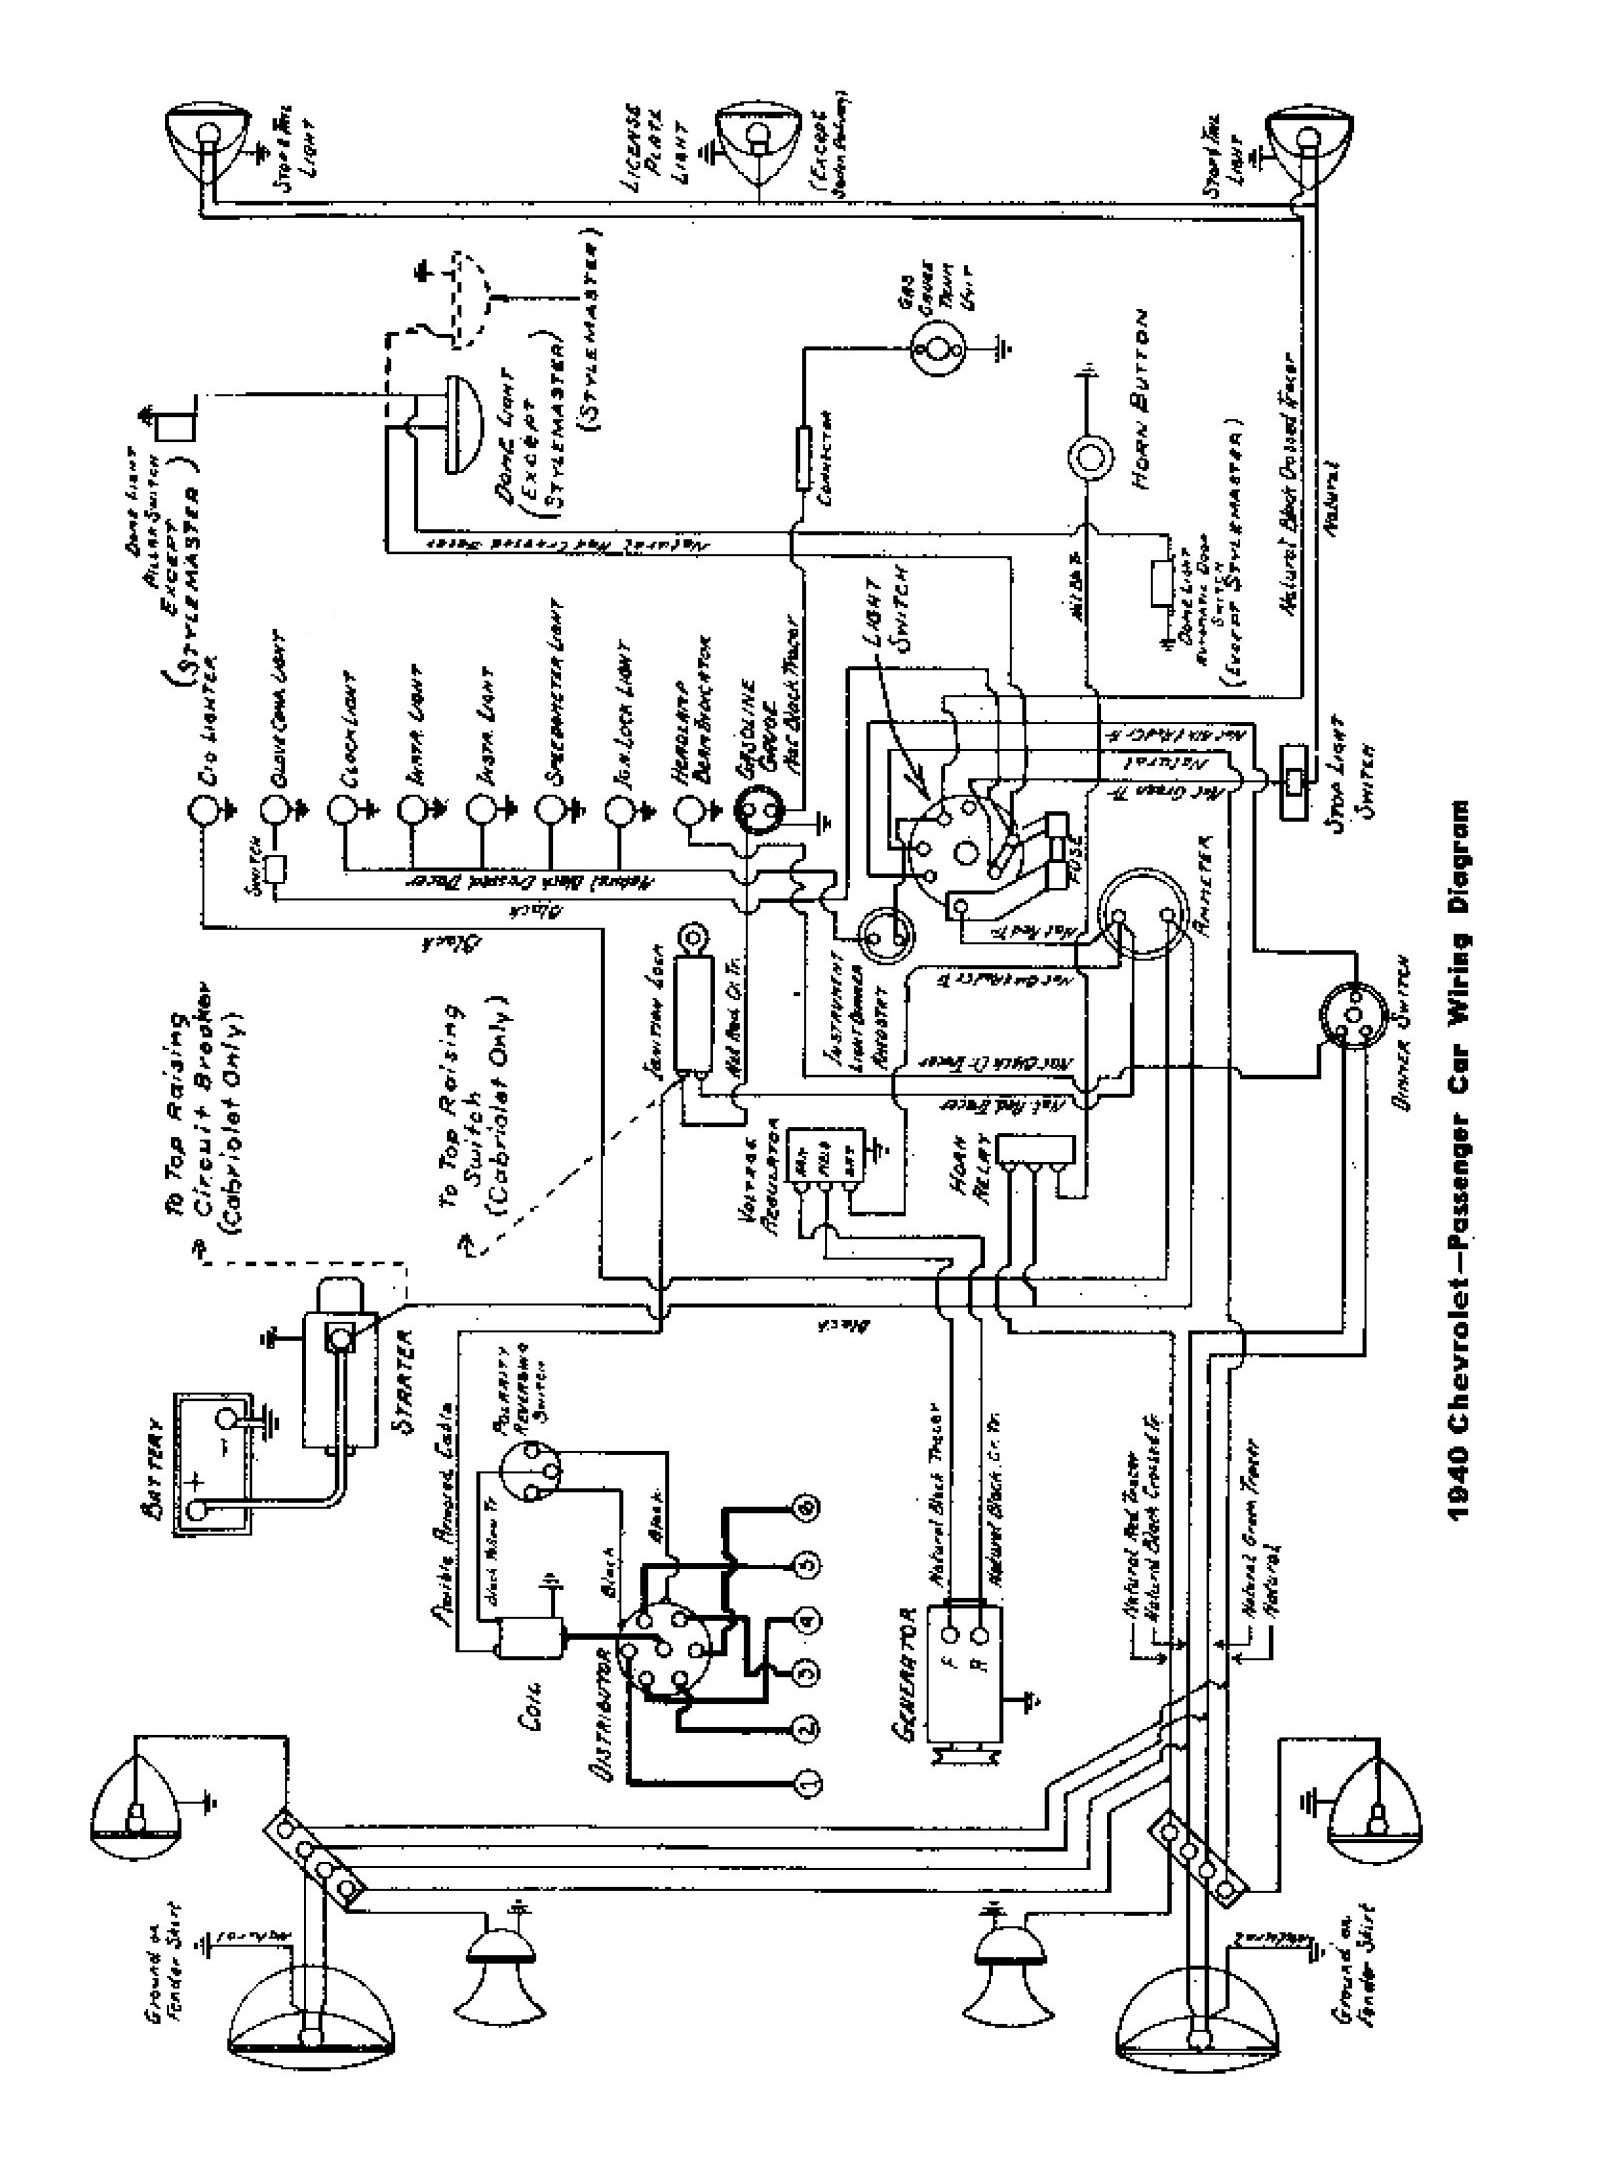 Painless Wiring Harness Diagram Gm | Wiring Diagram - Painless Wiring Harness Diagram